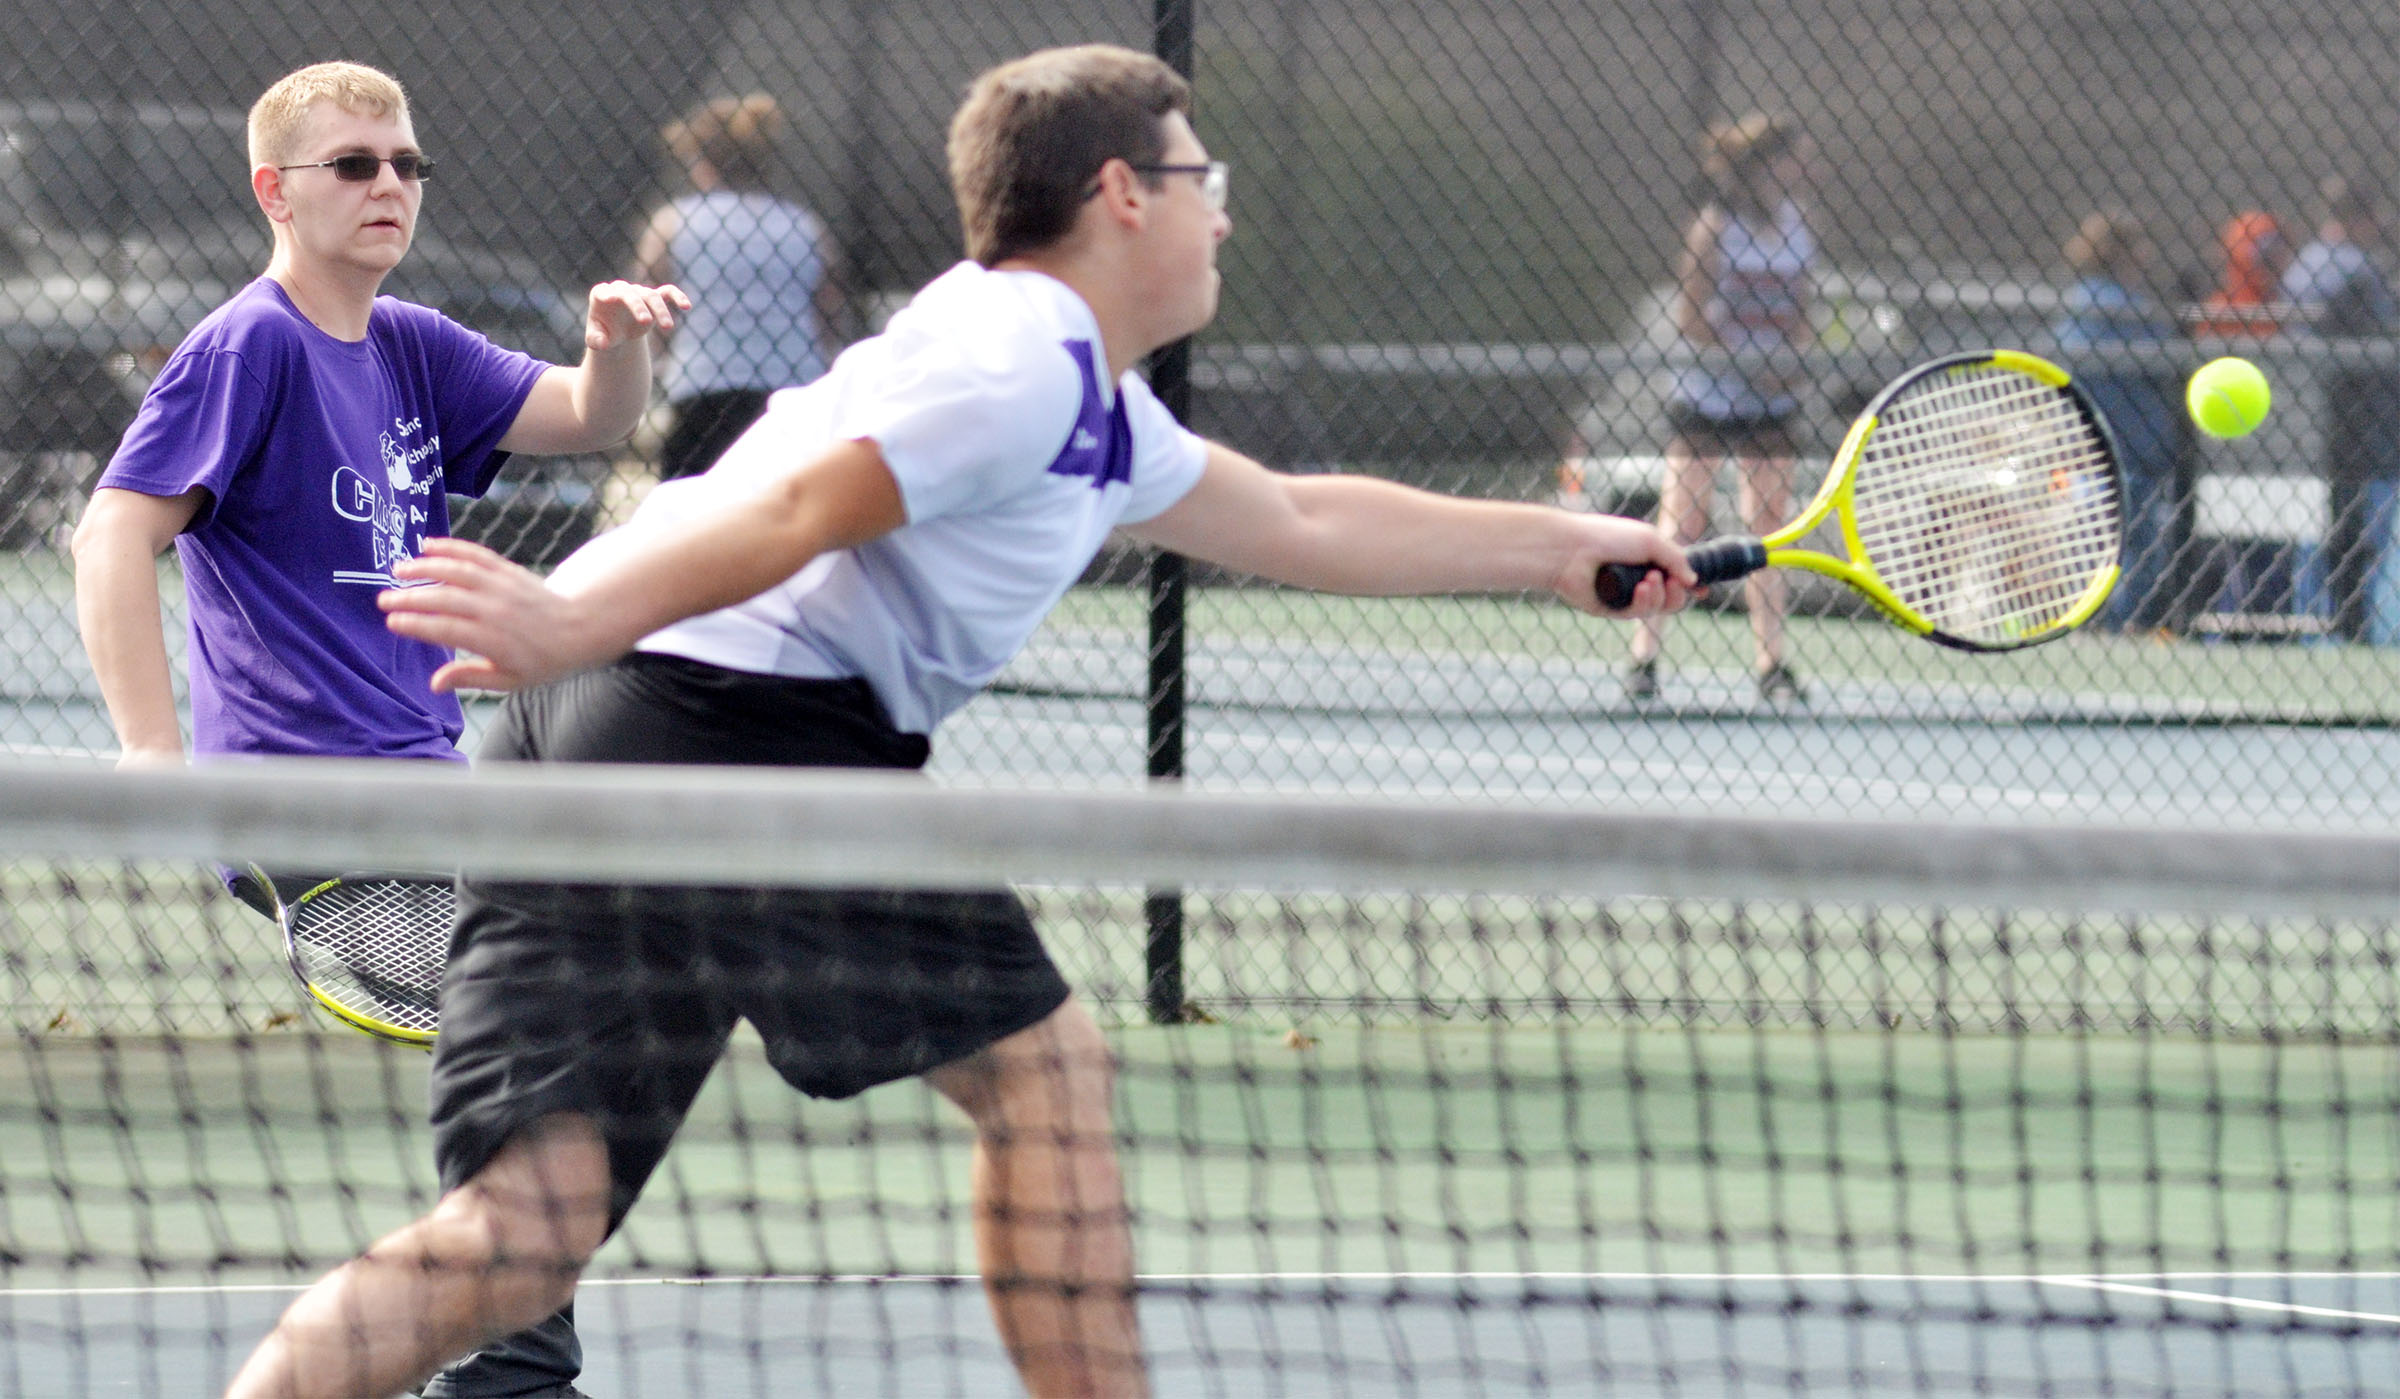 CHS sophomore Brandon Greer runs as his doubles partner Campbellsville Middle School eighth-grader Devan Keith hits the ball.